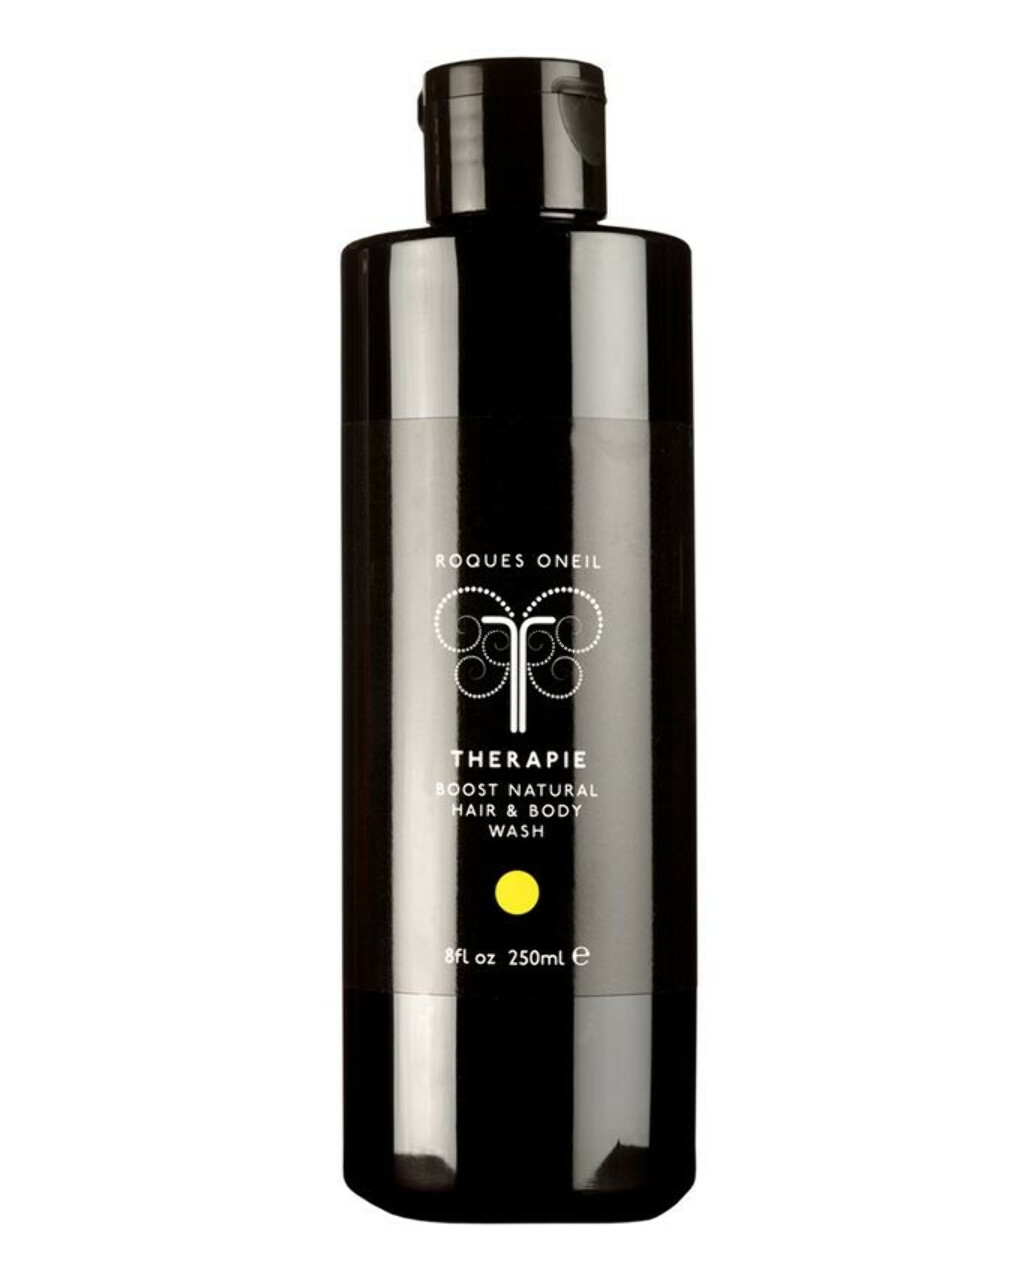 THERAPIE Boost Hair & Body Wash( 250ml )